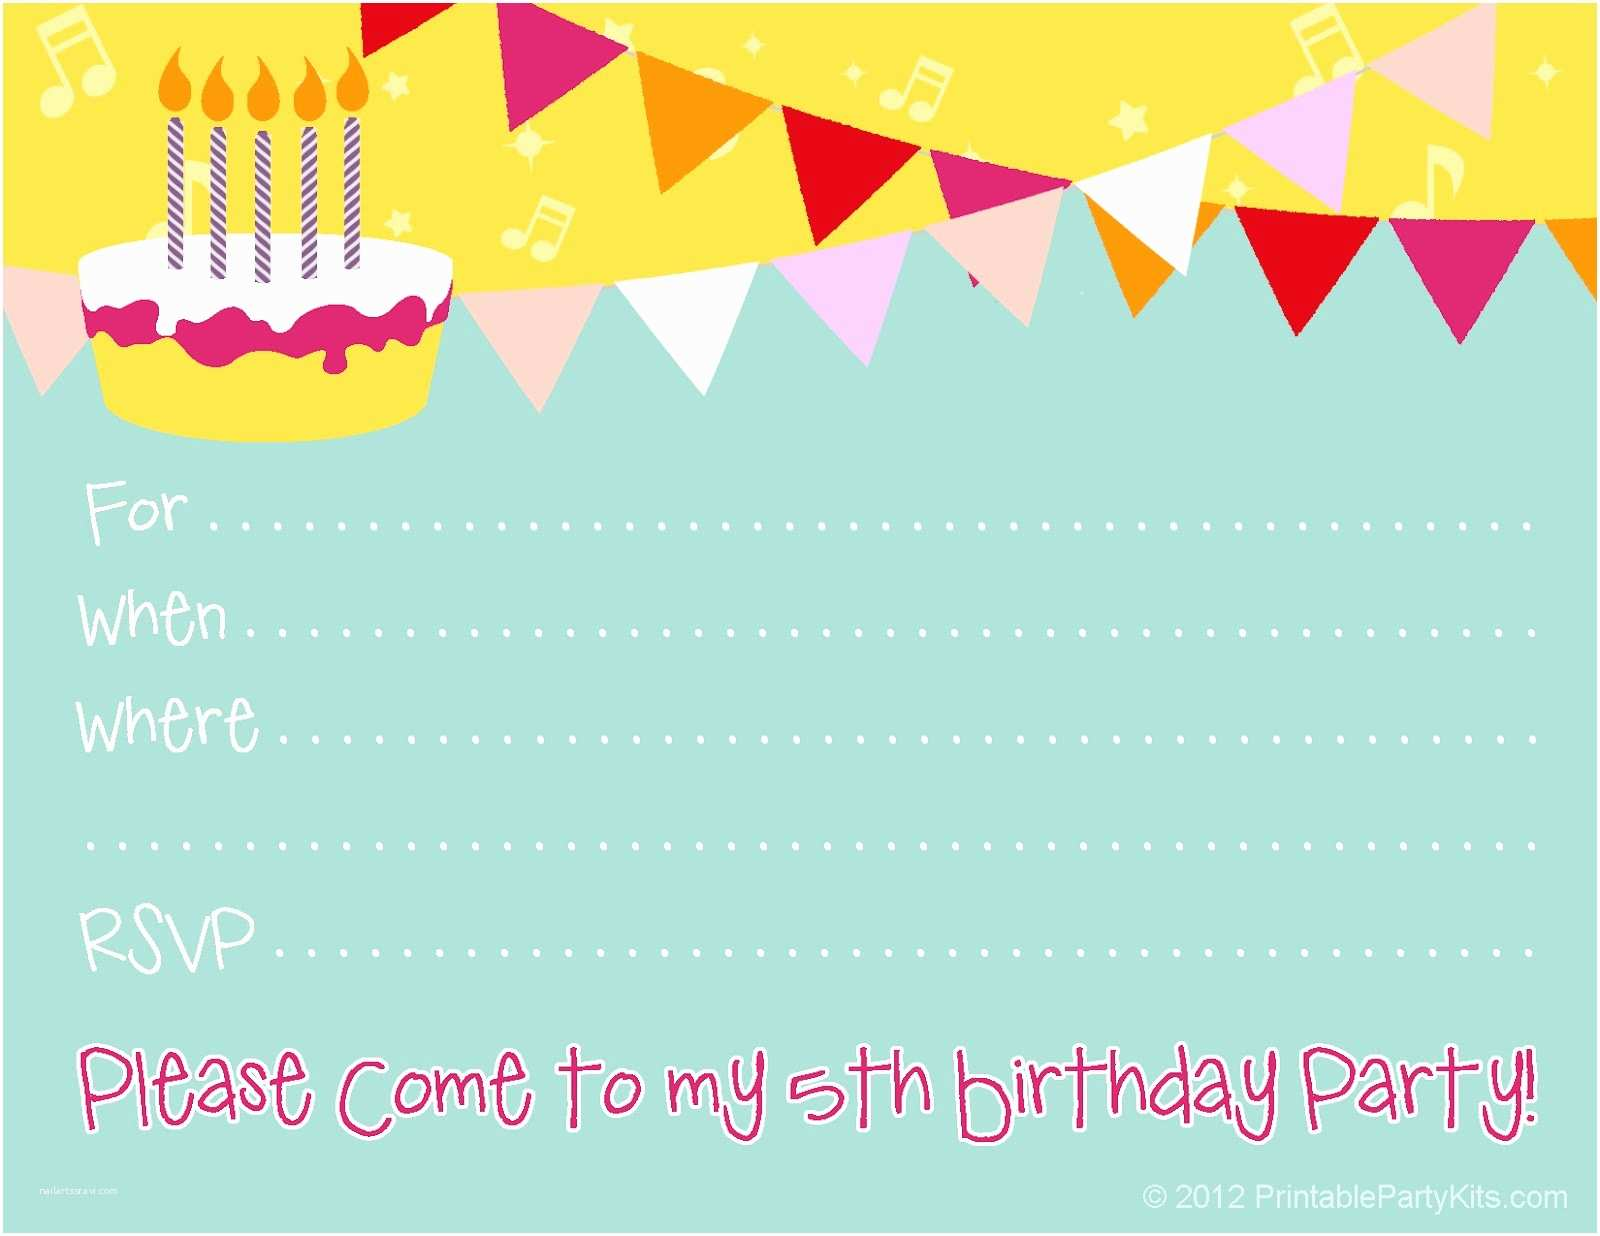 Create Birthday Invitations Dreaded Birthday Party Invite Template People Looking for